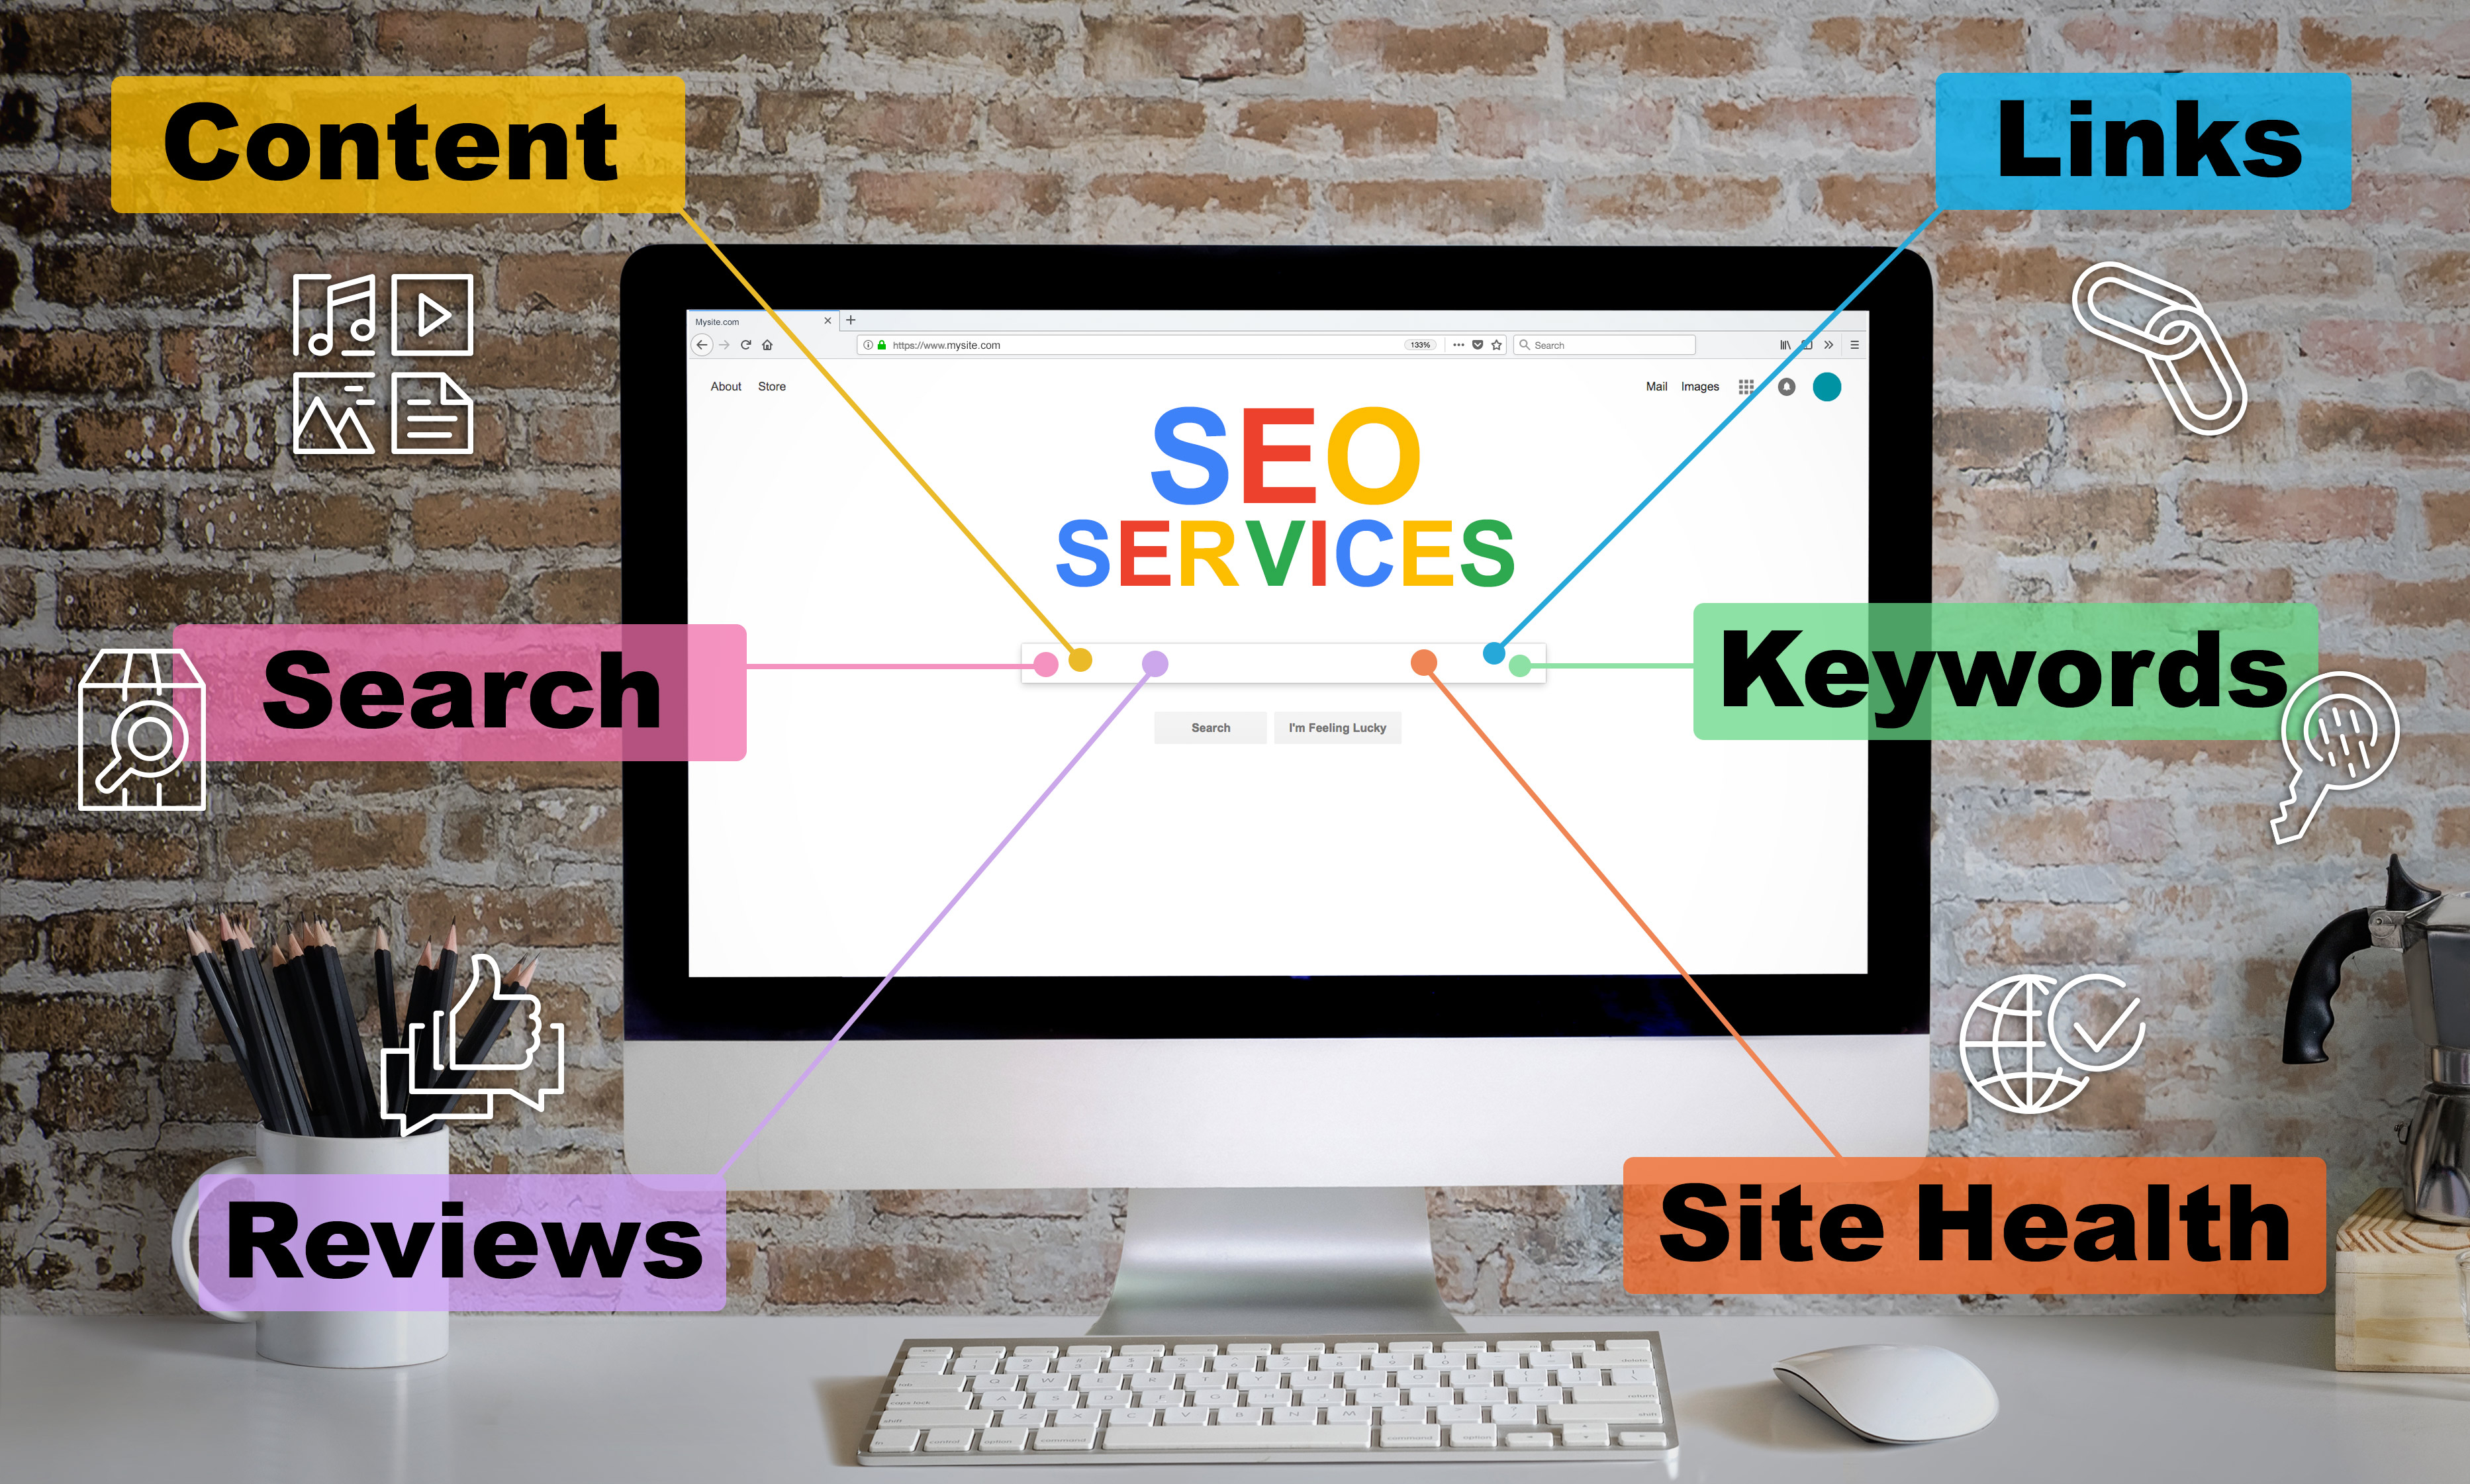 The Benefits of Dealerwebb SEO Services